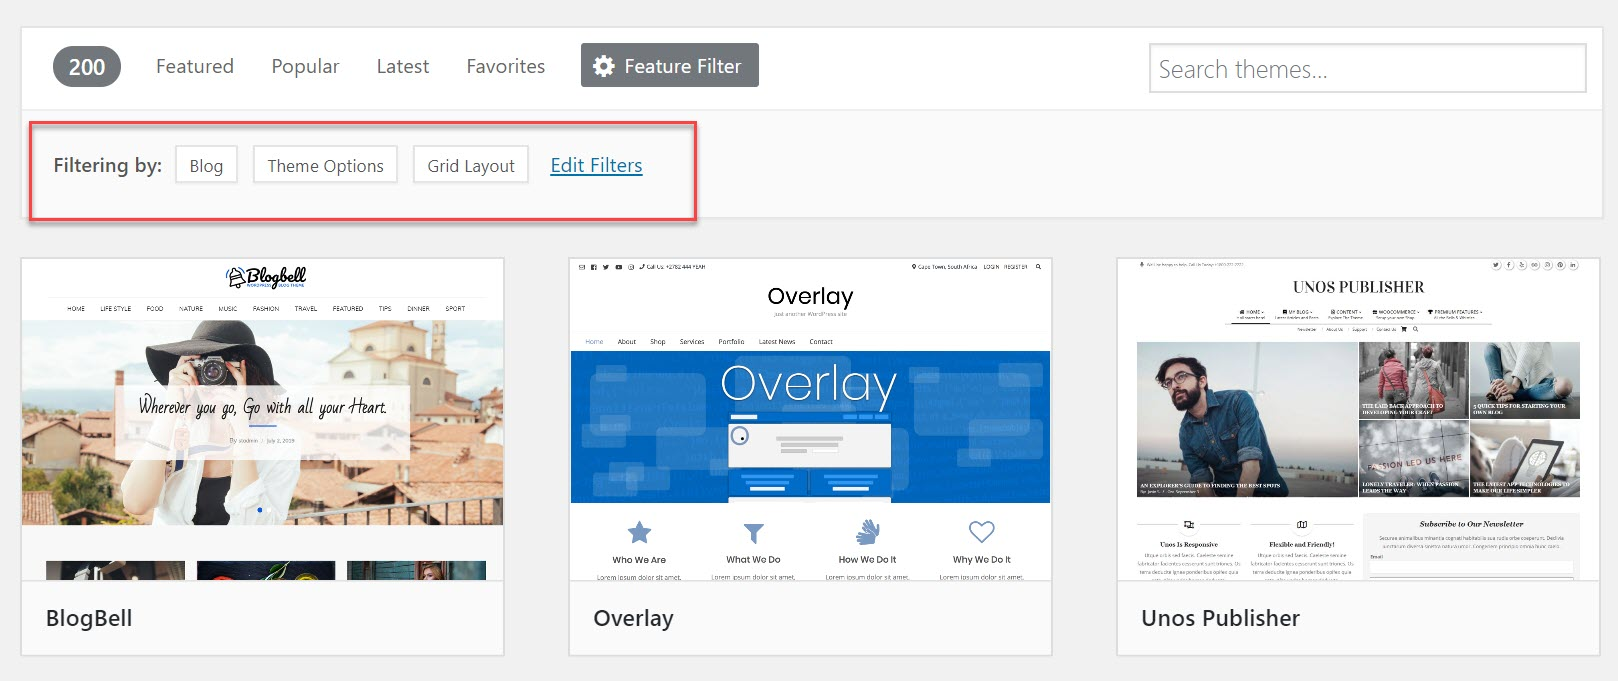 Feature Filter search results